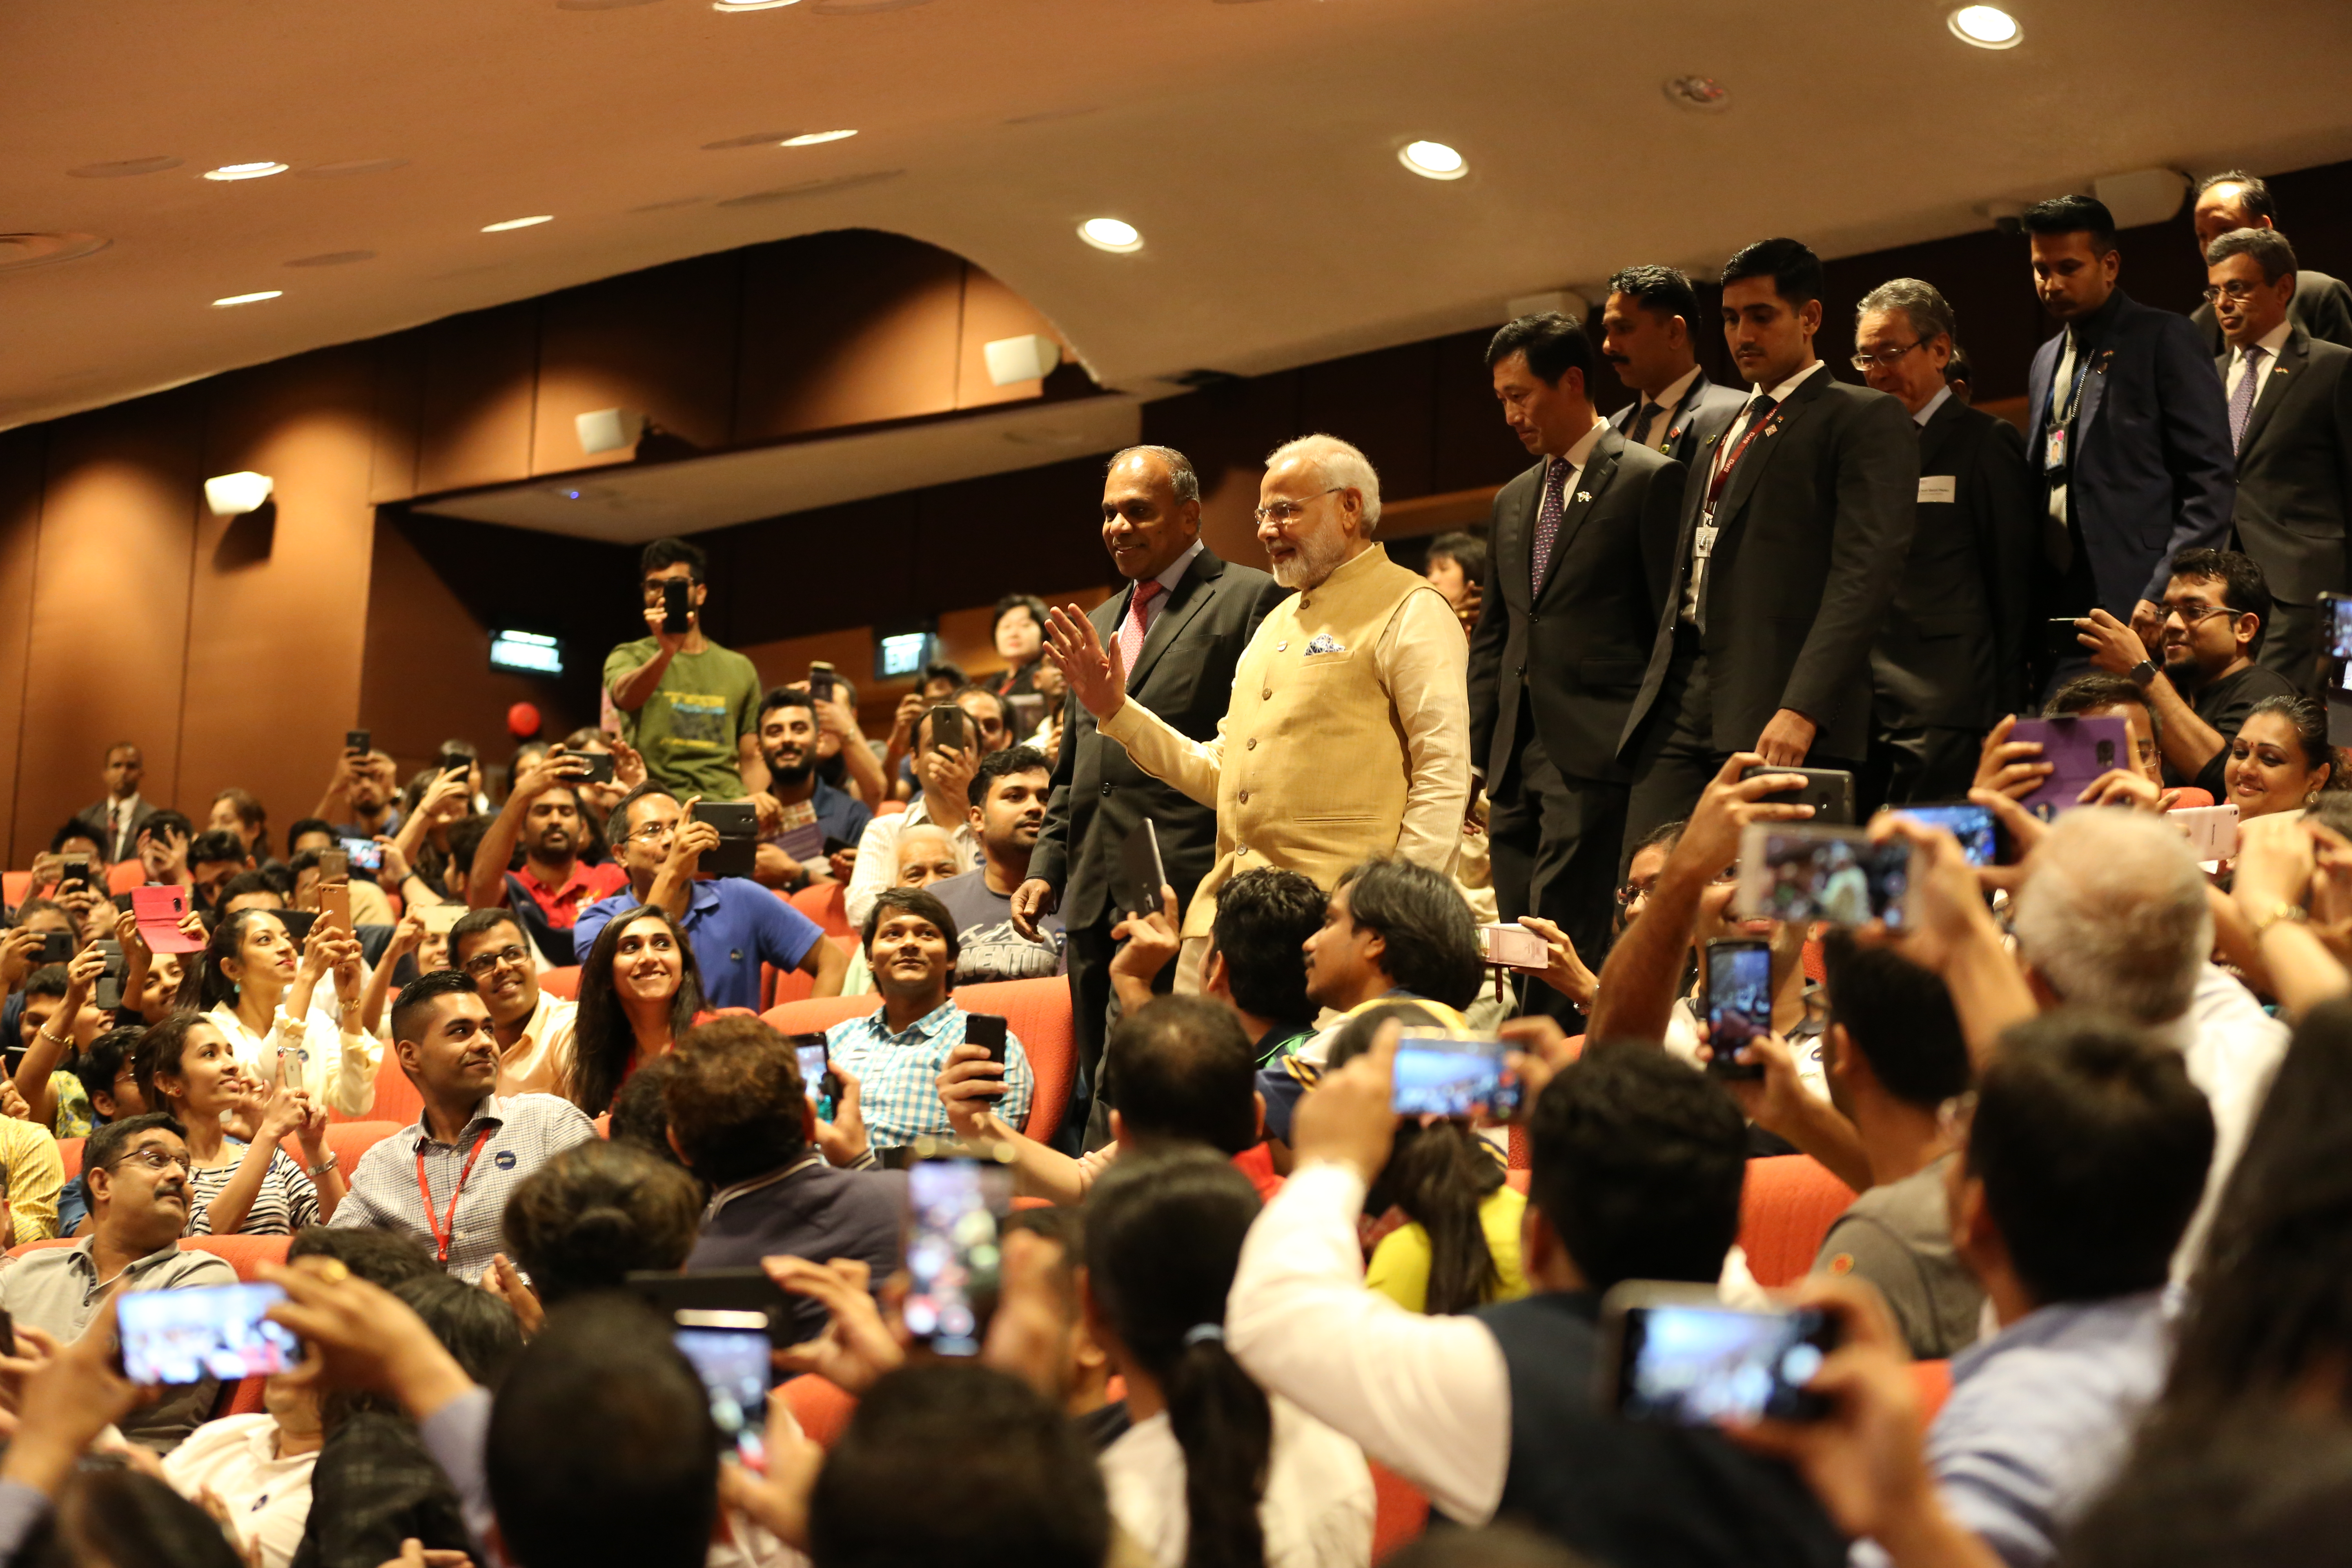 PM Narendra Modi receiving a rousing welcome from NTU students